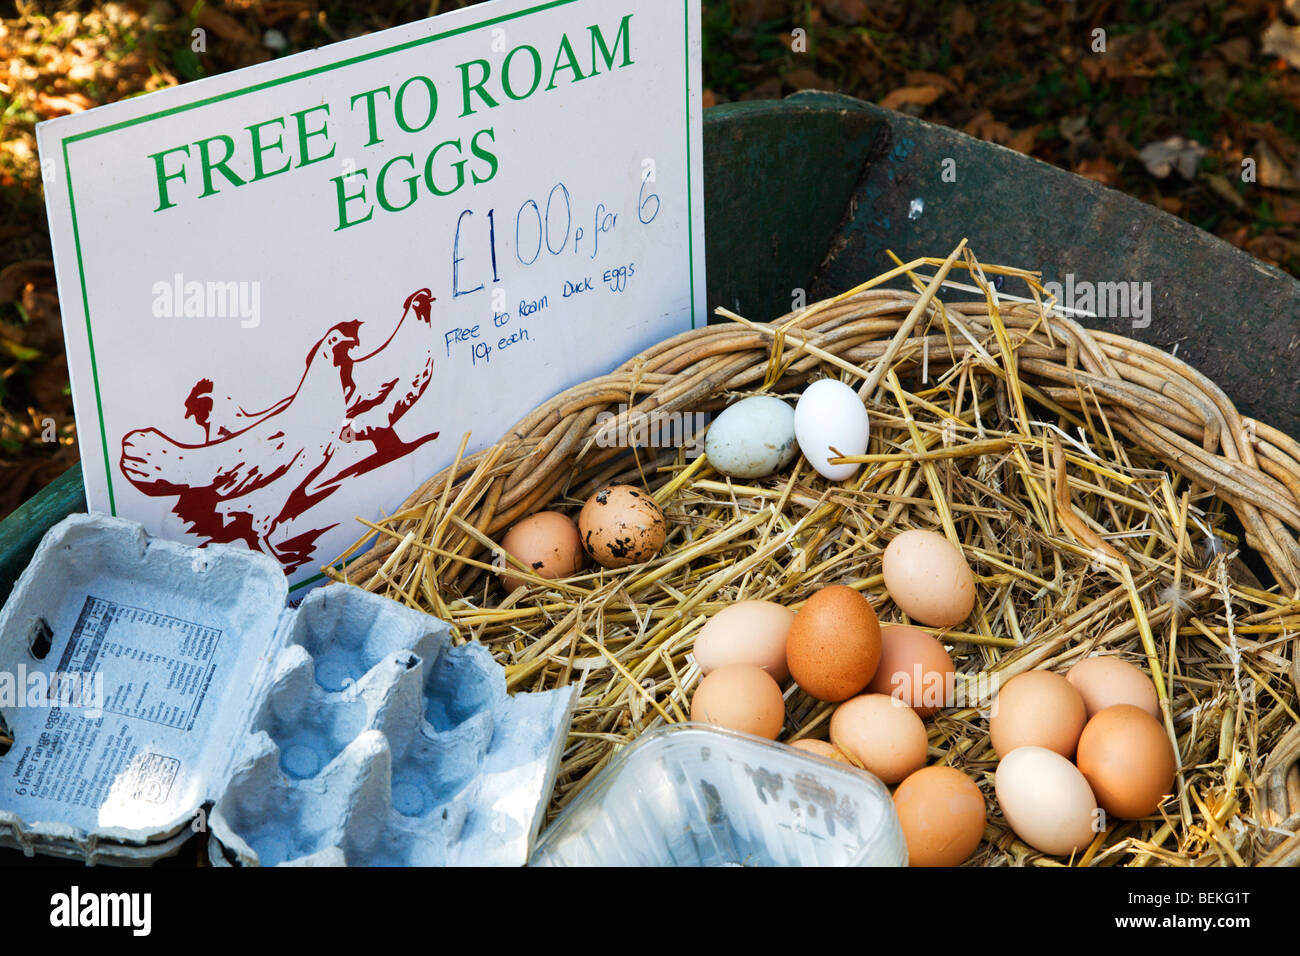 Free to Roam Eggs for sale at a farm Bures Suffolk England - Stock Image